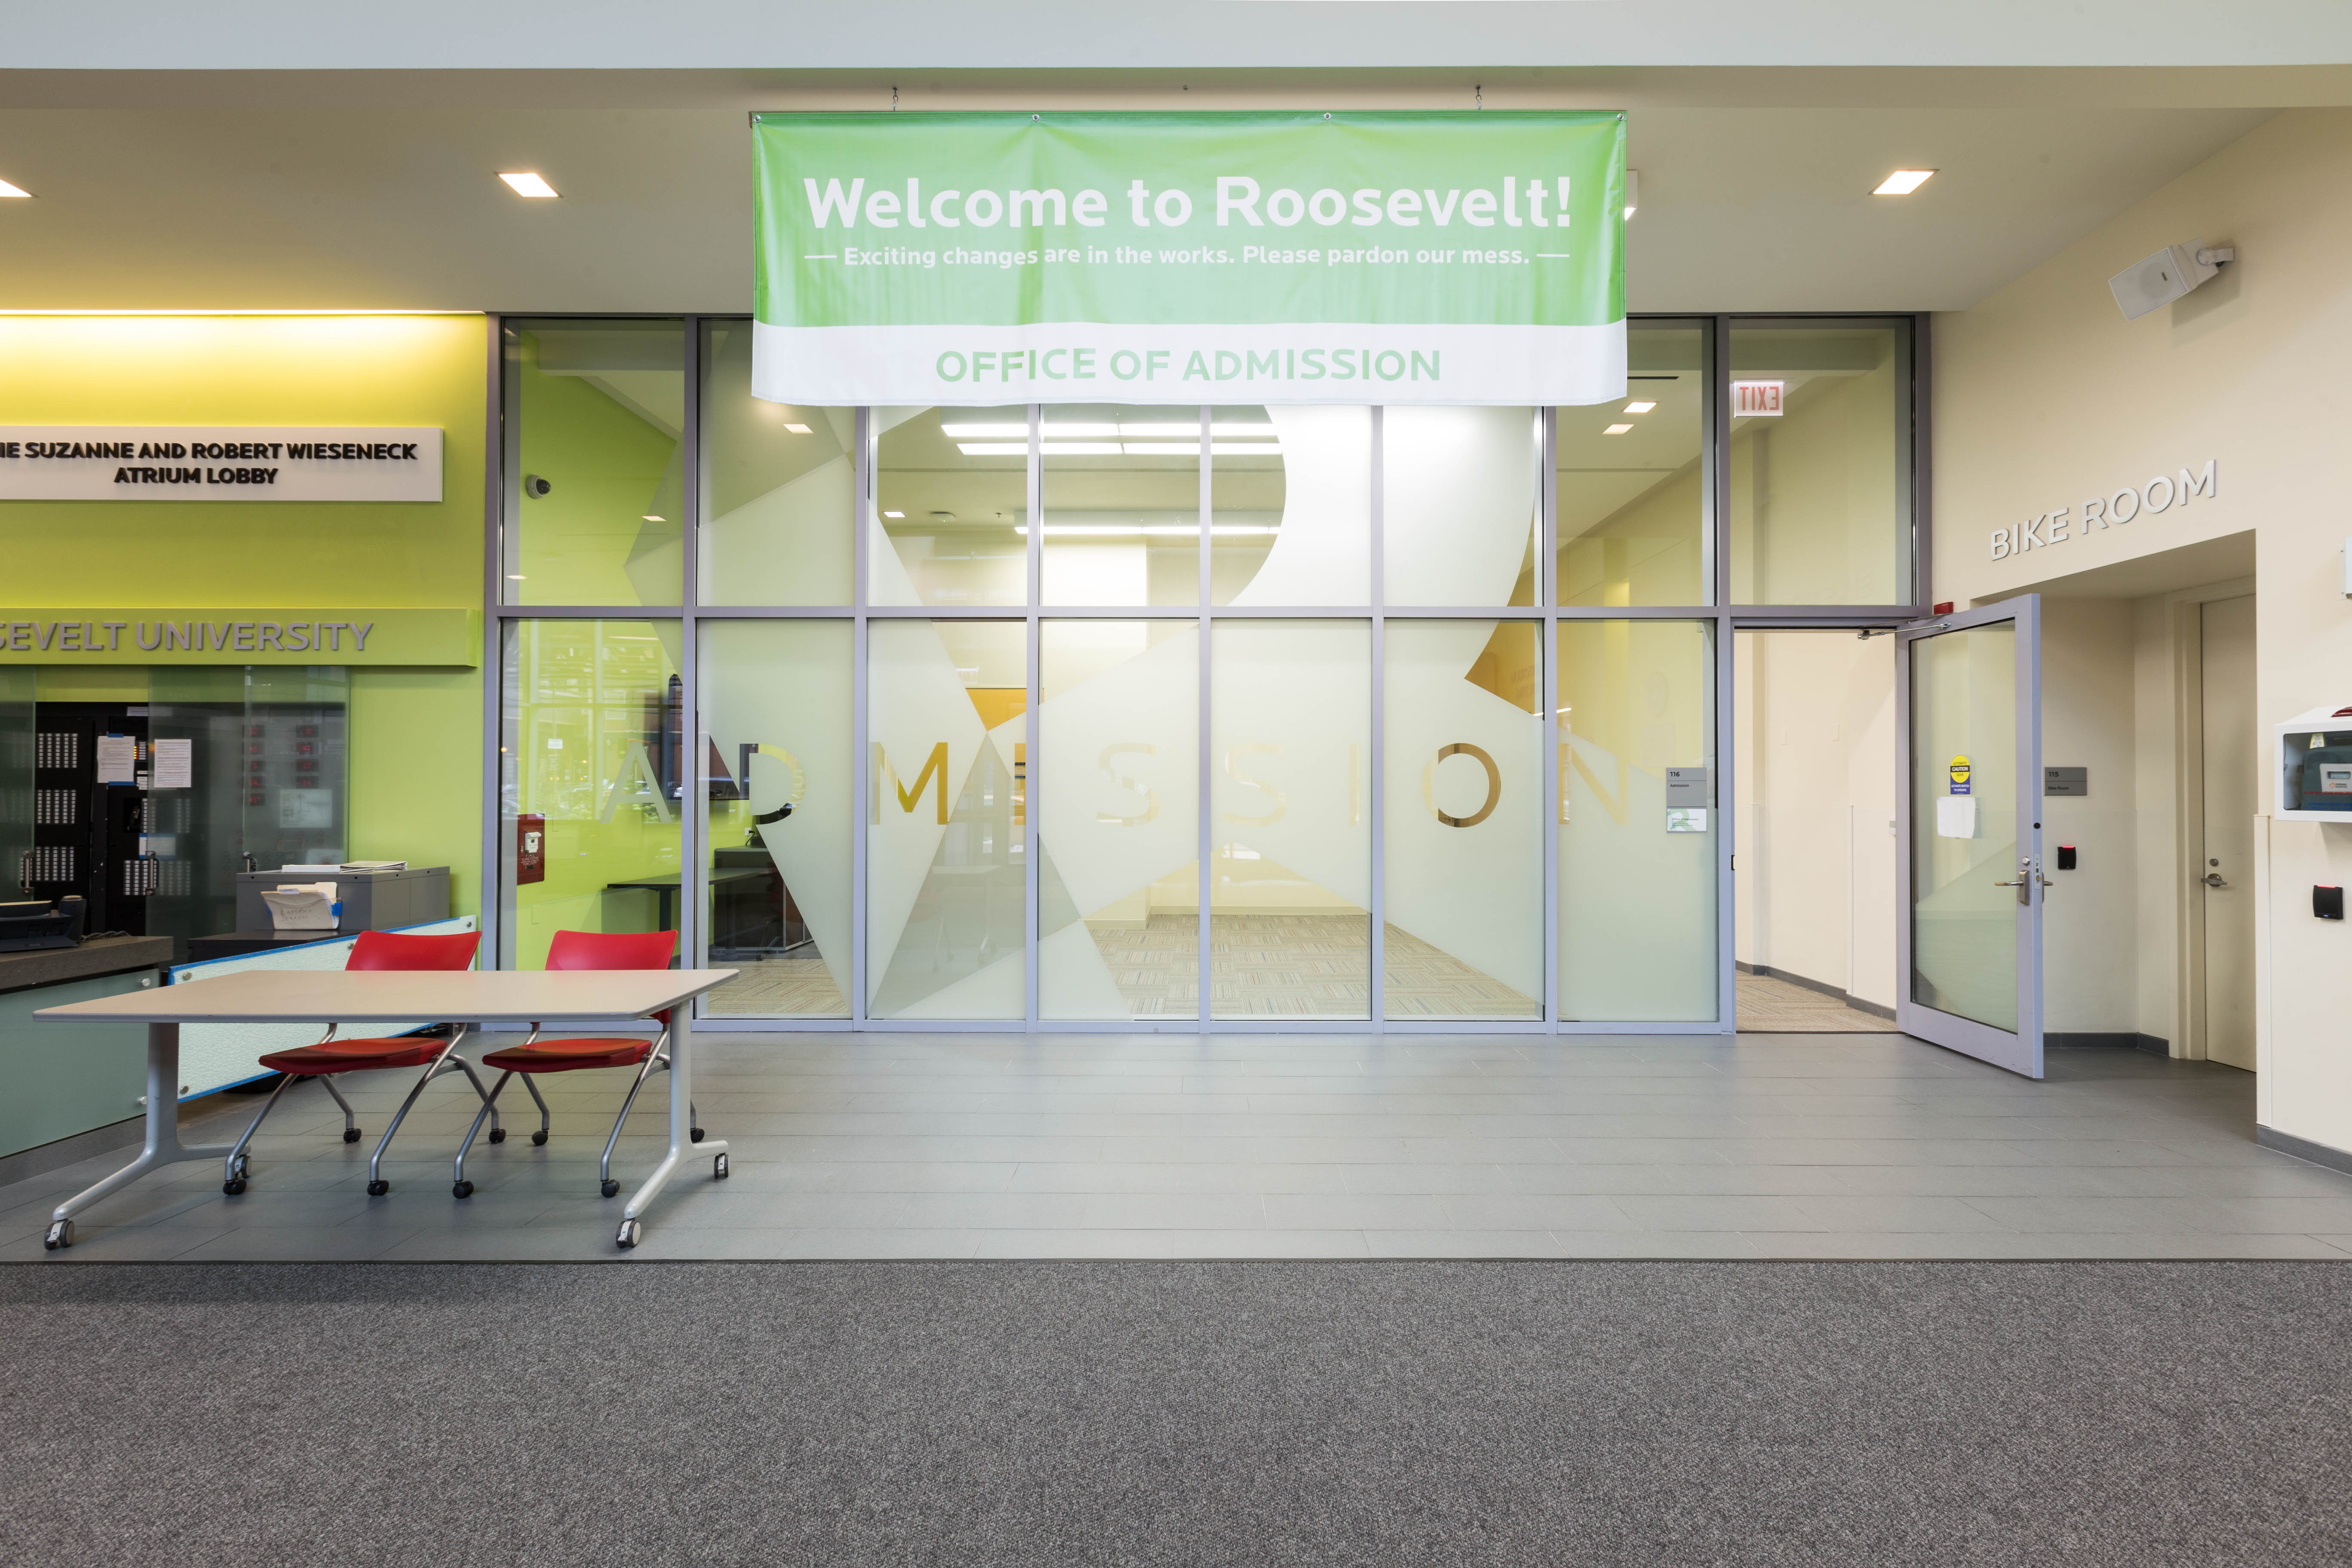 Roosevelt University: Admission's Offices